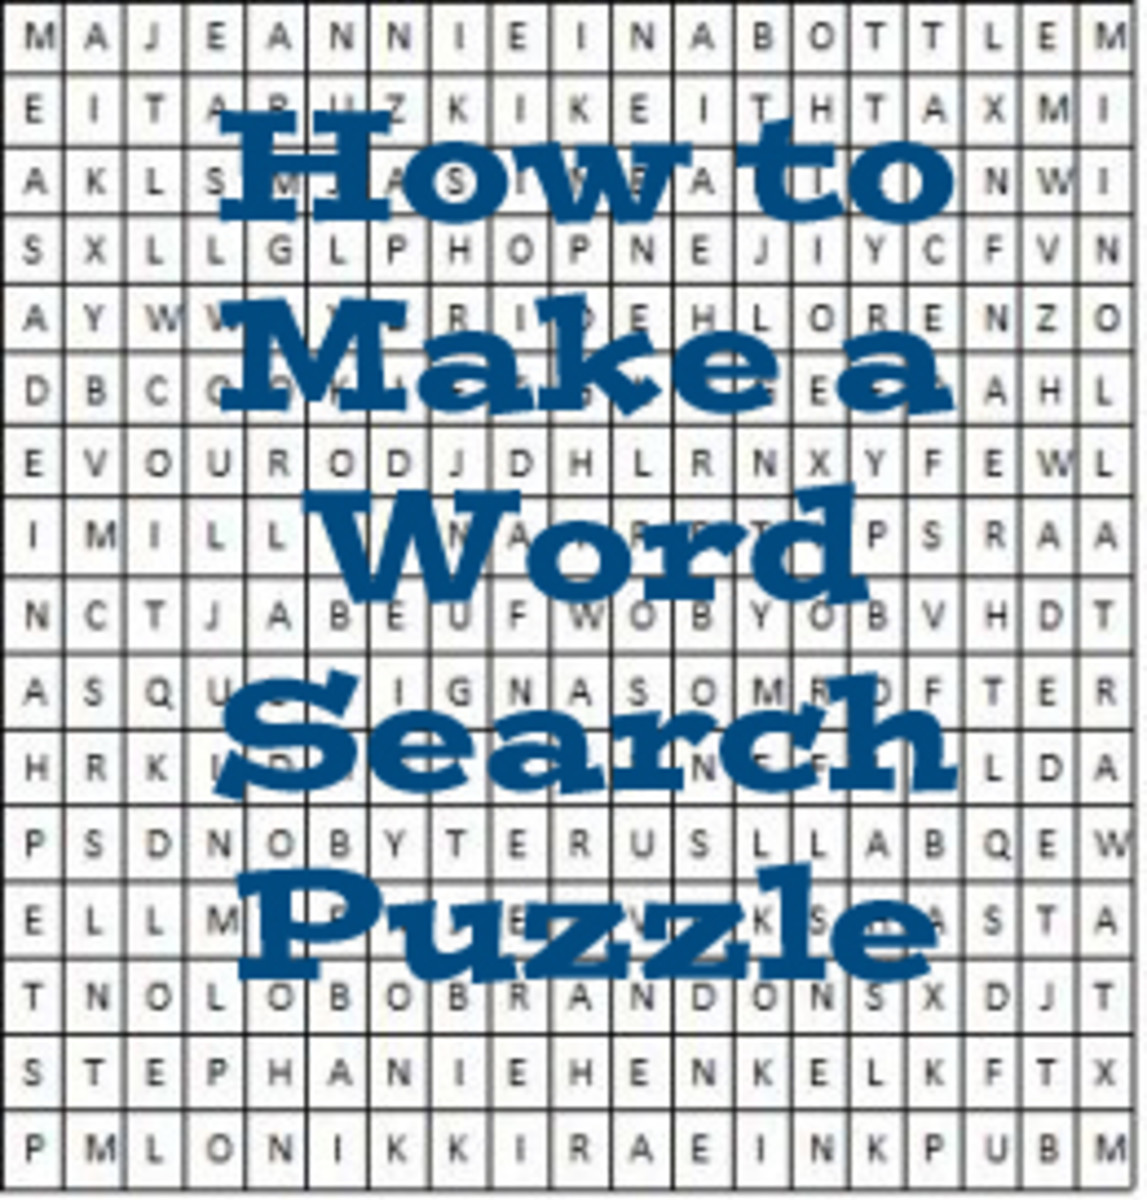 5 Easy Steps to Create Your Own Word Search Puzzle